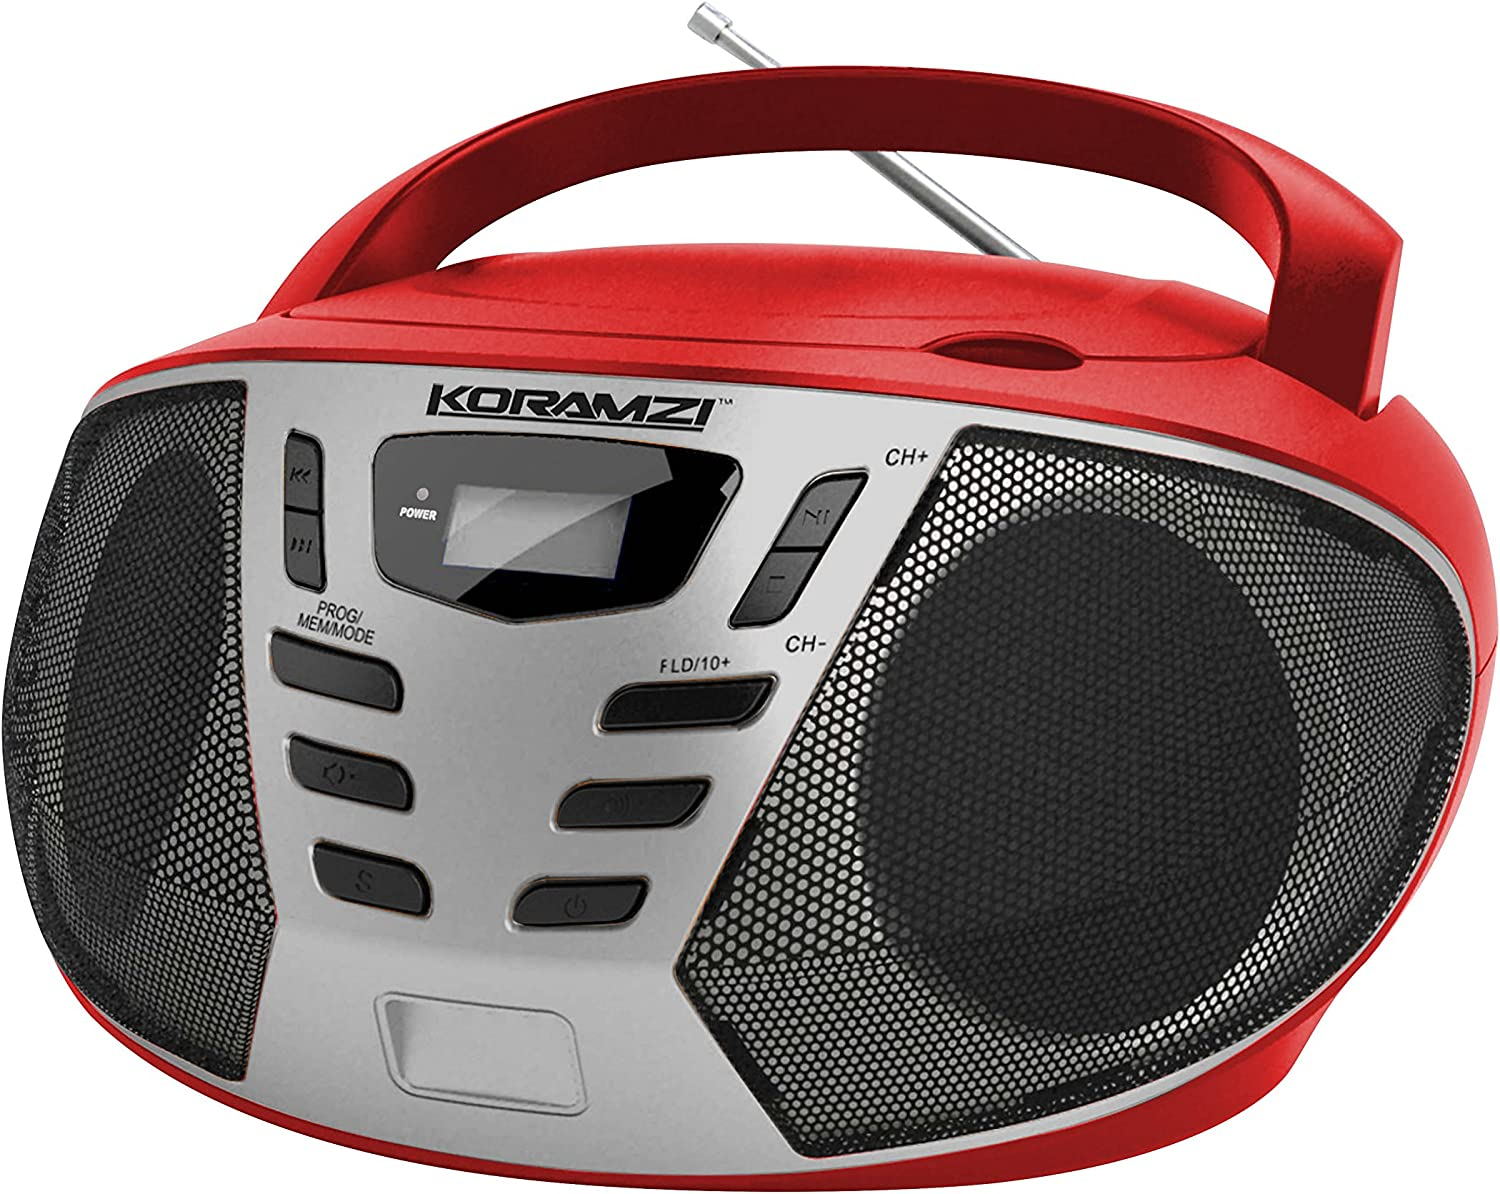 KORAMZI Portable CD Boombox Popular brand w AM FM Loading Radio IN Top Chicago Mall AUX